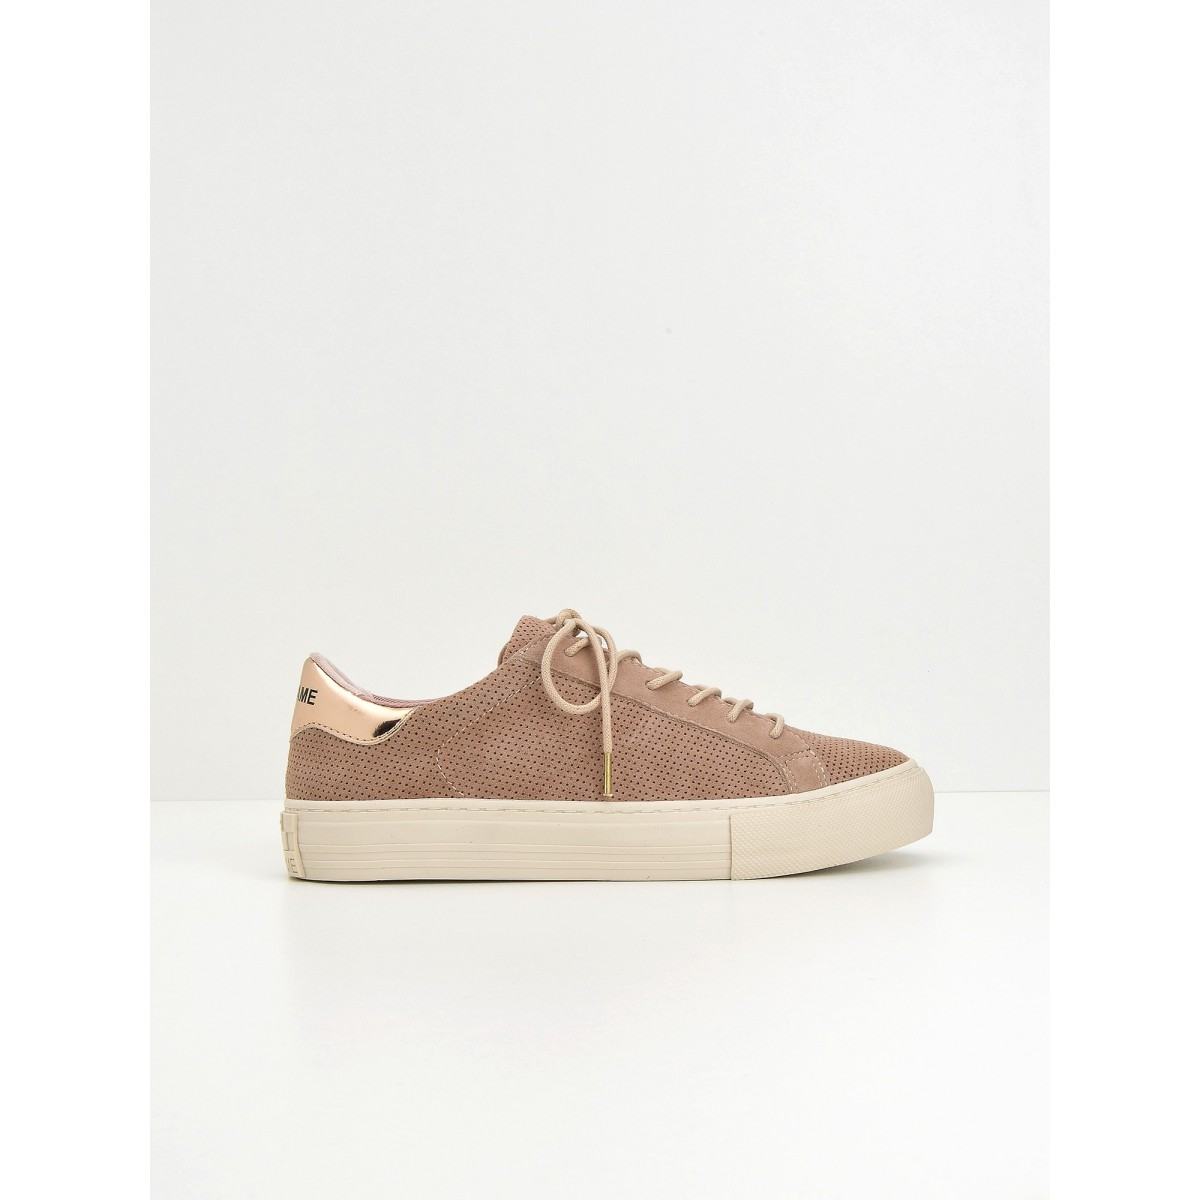 No Name Arcade Sneaker - Punch Goat Sued - Dragee